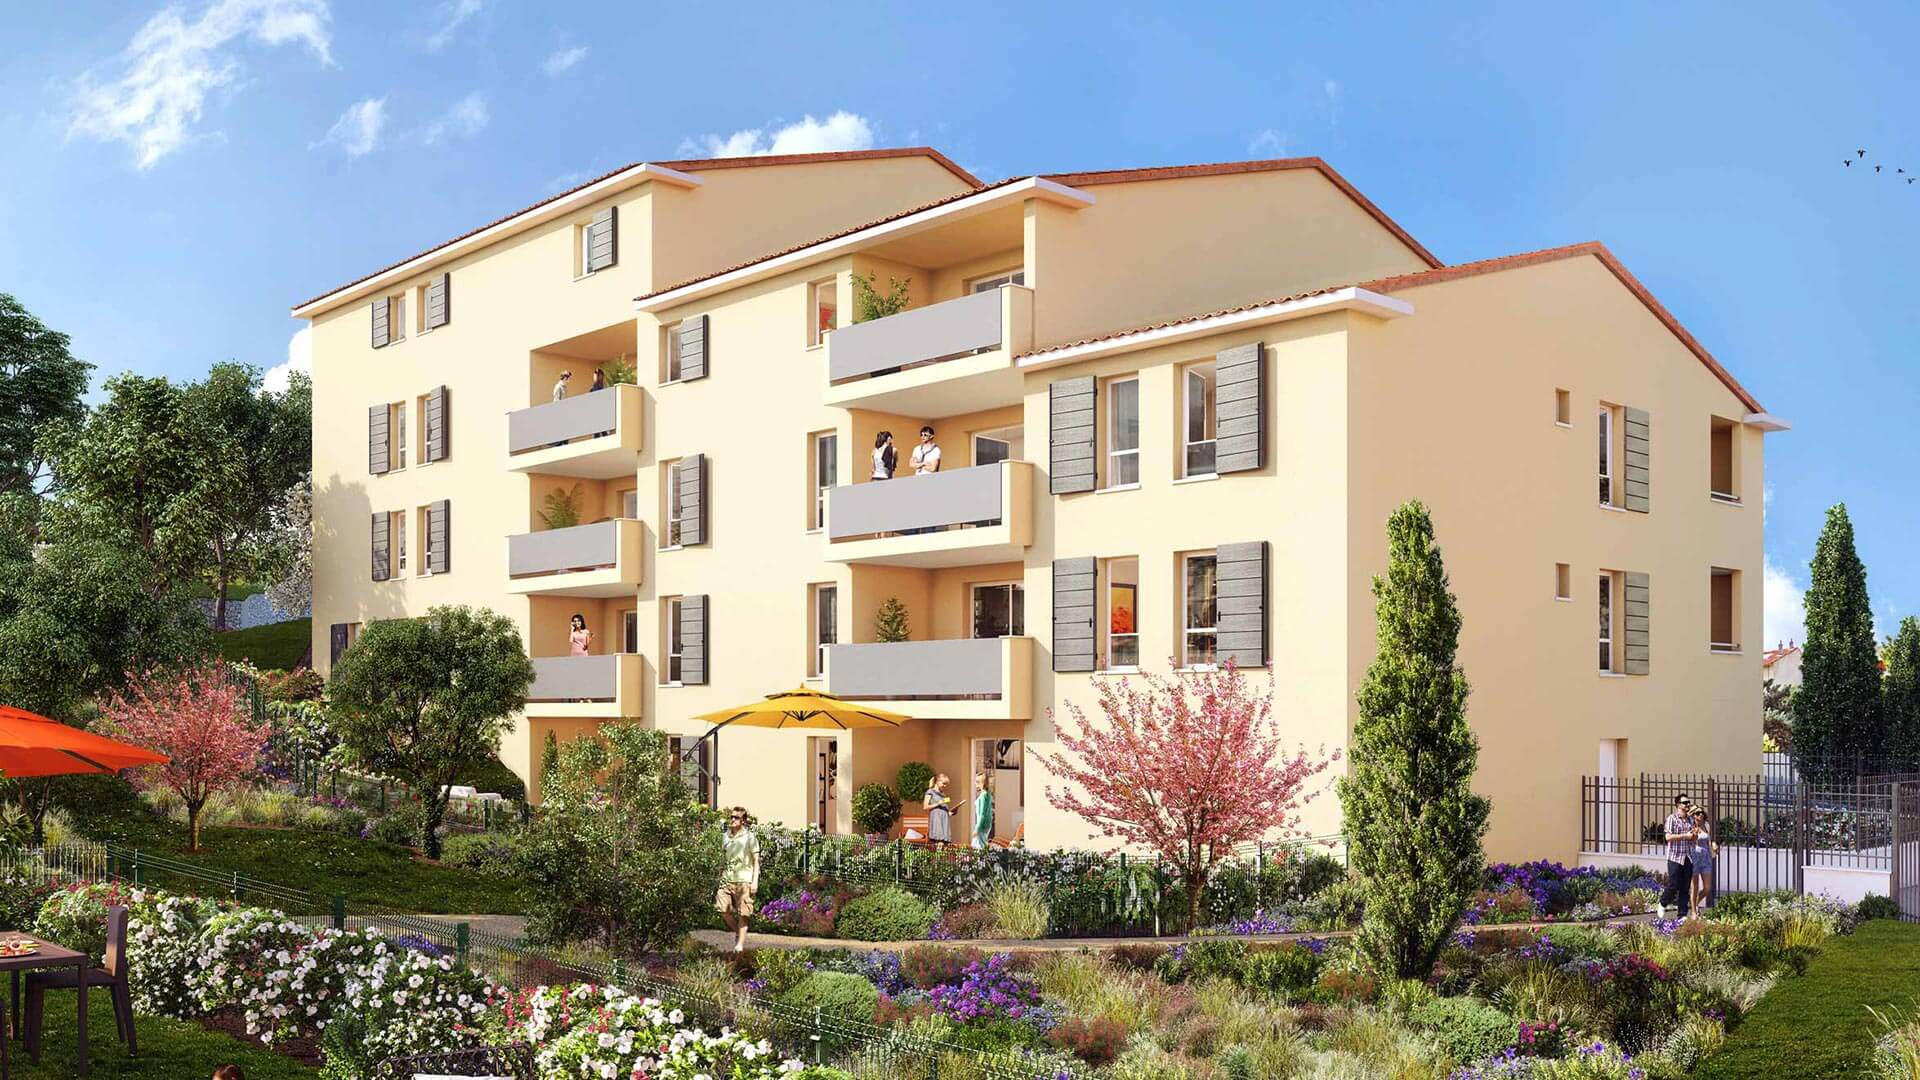 Coeur restanques programme immobilier neuf allauch for Immobilier neuf idf